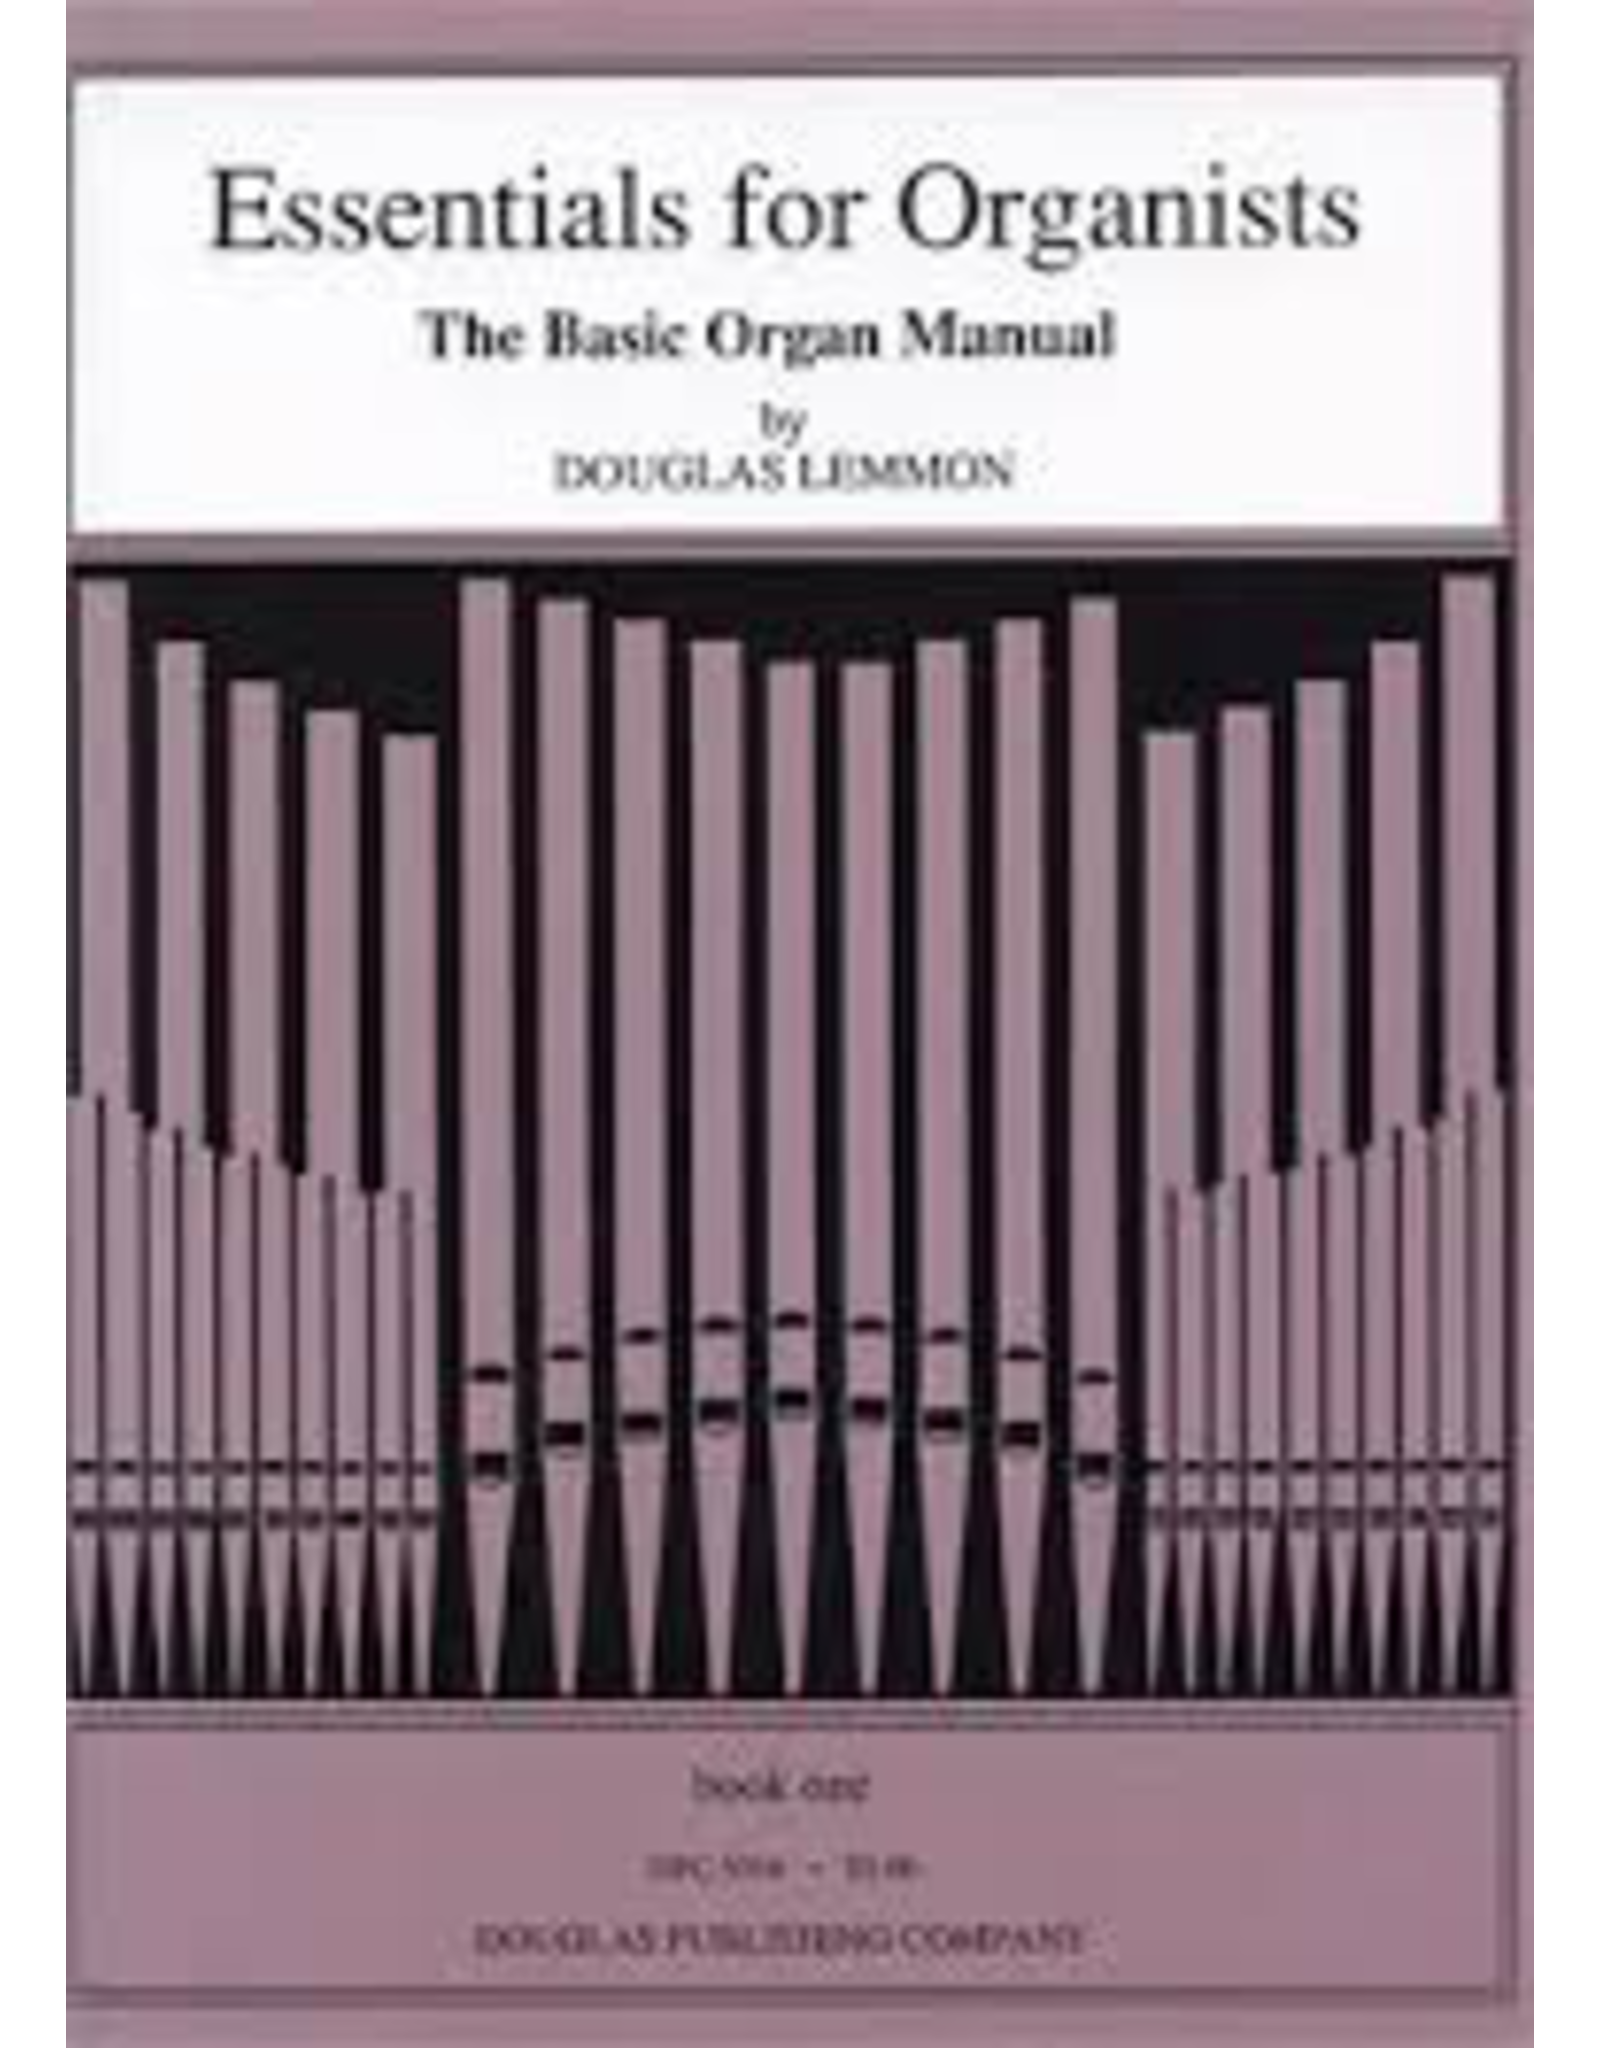 Douglas Publishing Company Essentials for Organists Douglas Lemmon